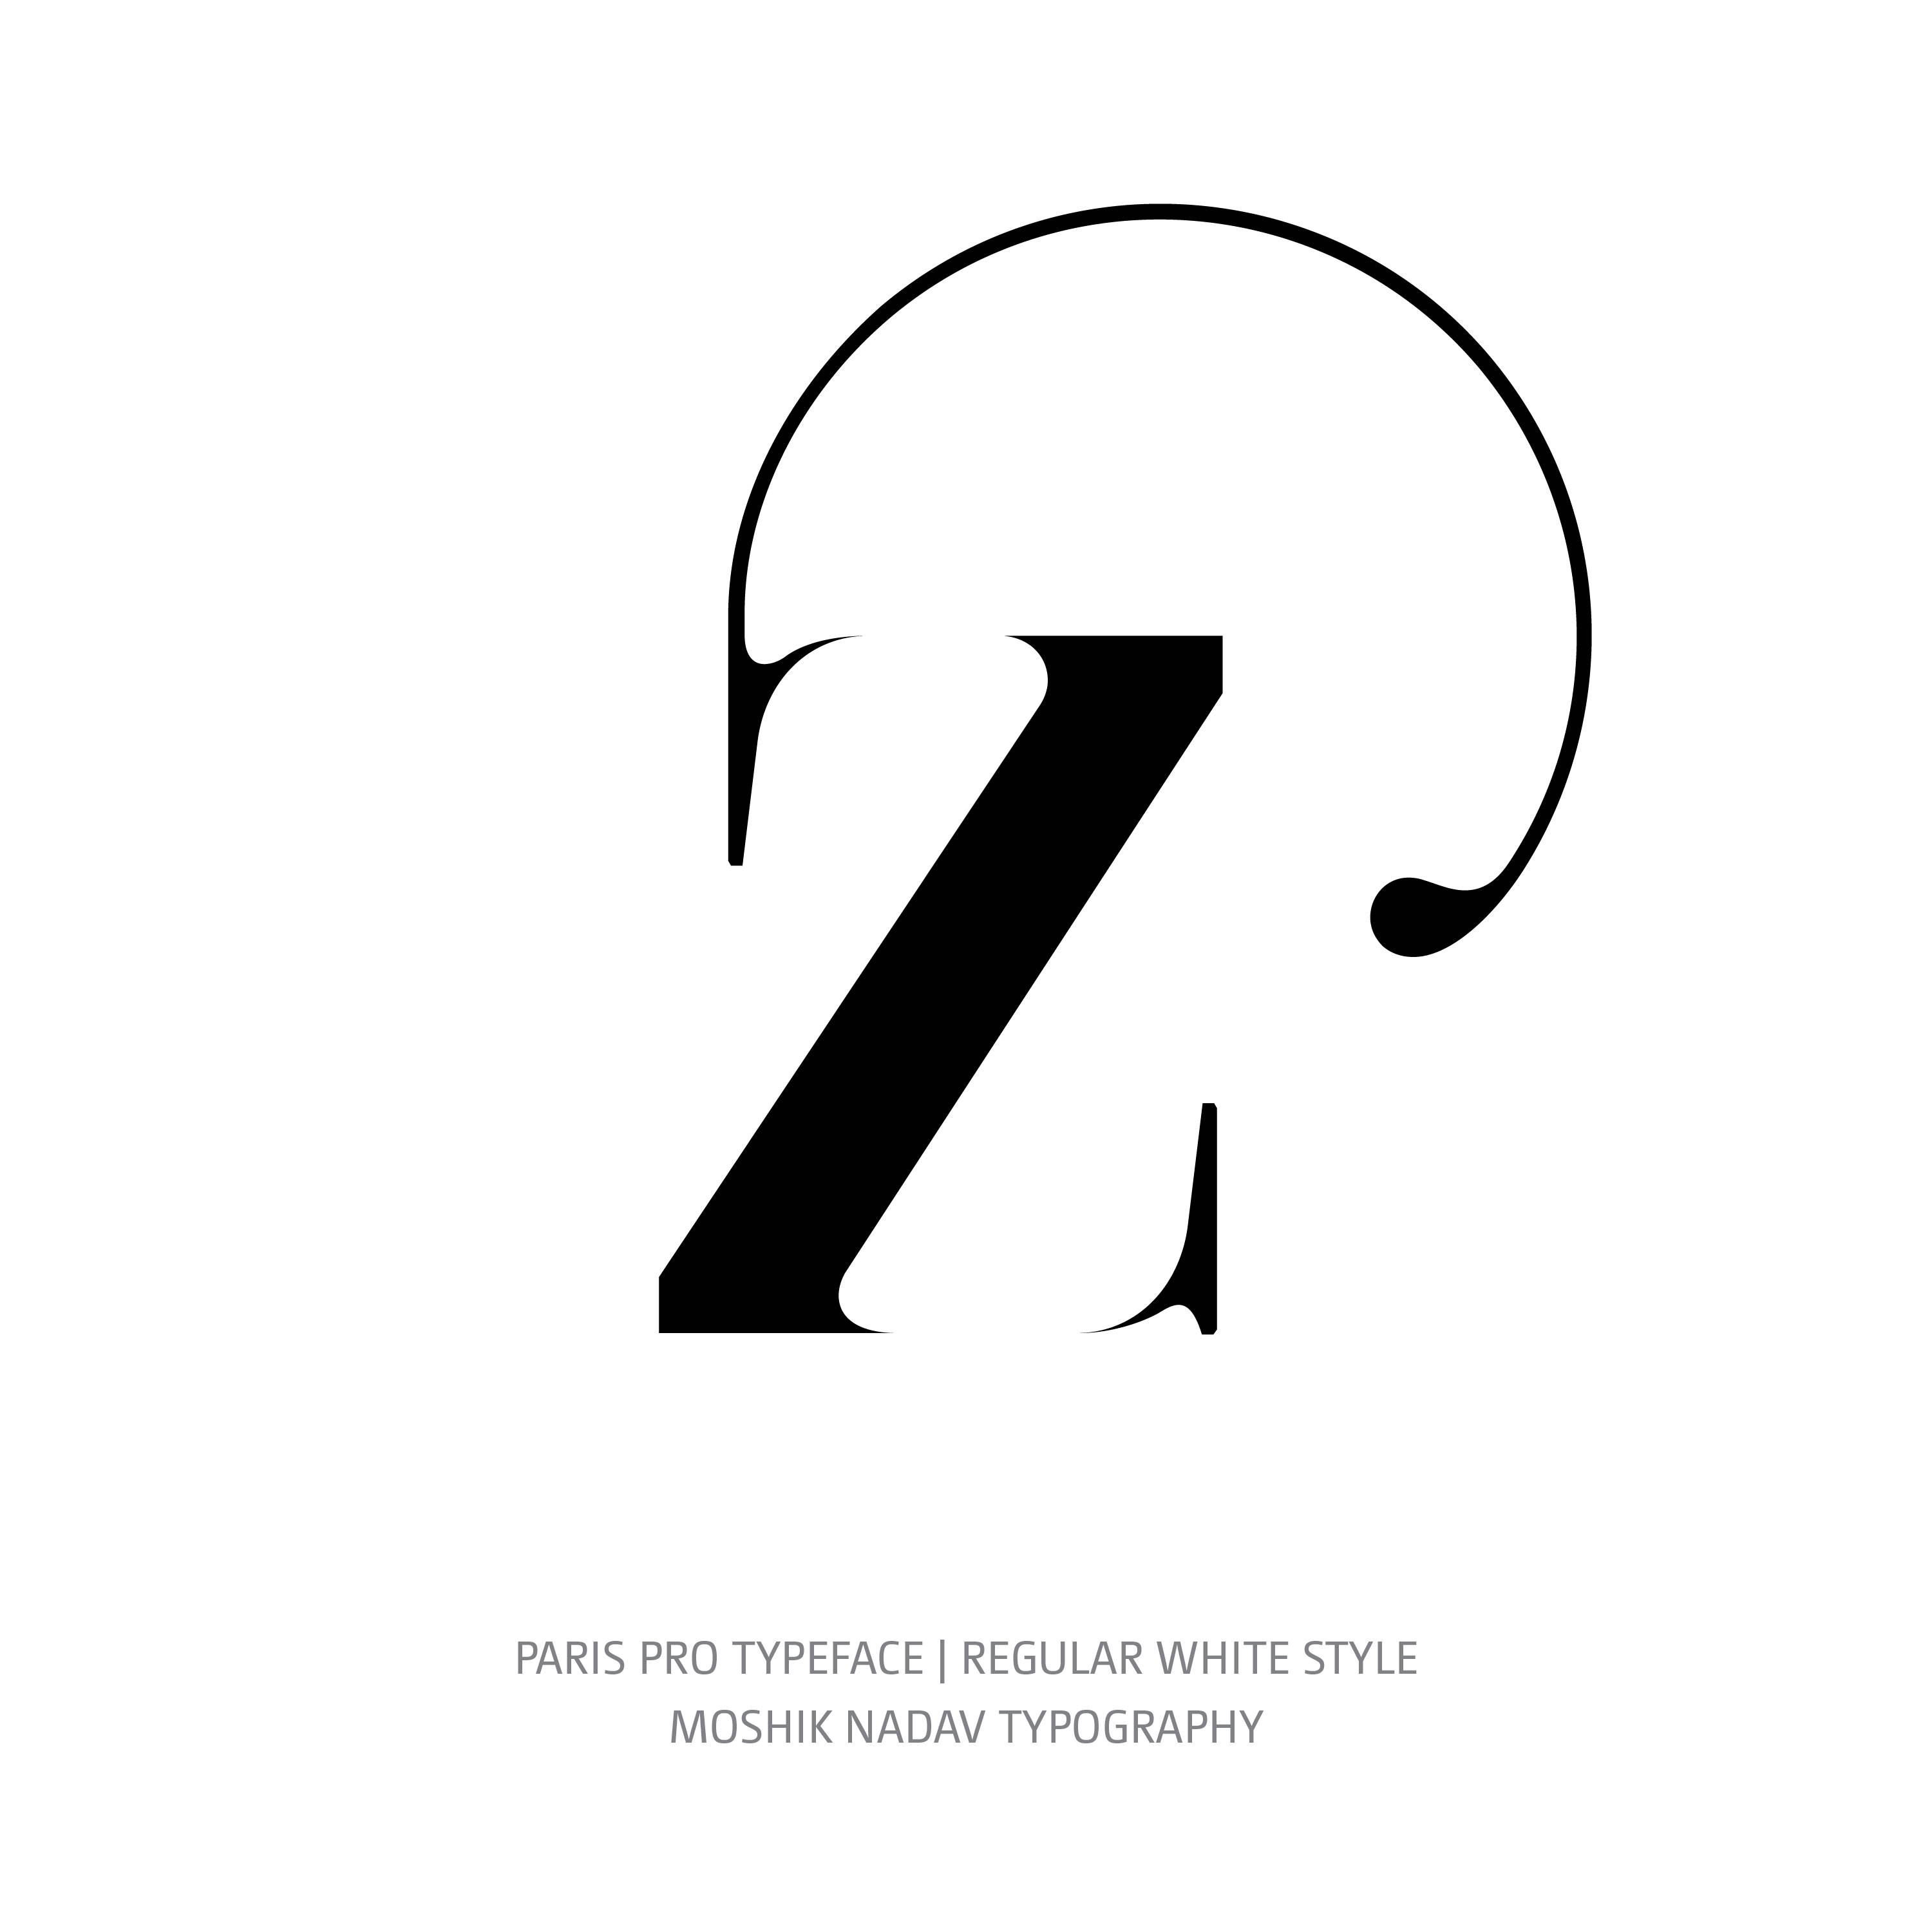 Paris Pro Typeface Regular White alt z ligature